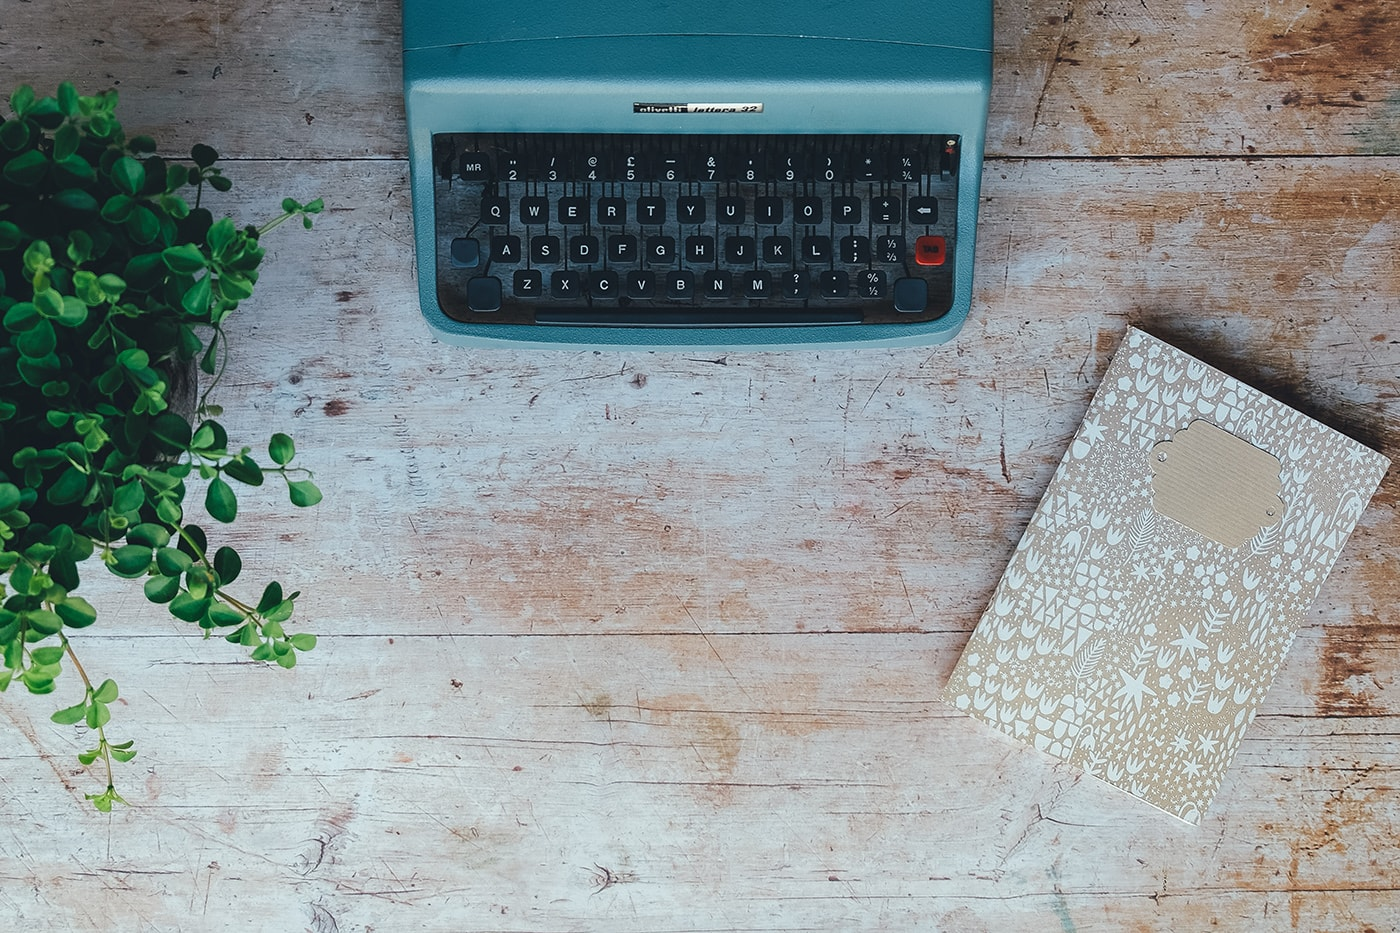 Overview shot of a typewriter, notebook, and plant on a rustic looking desktop